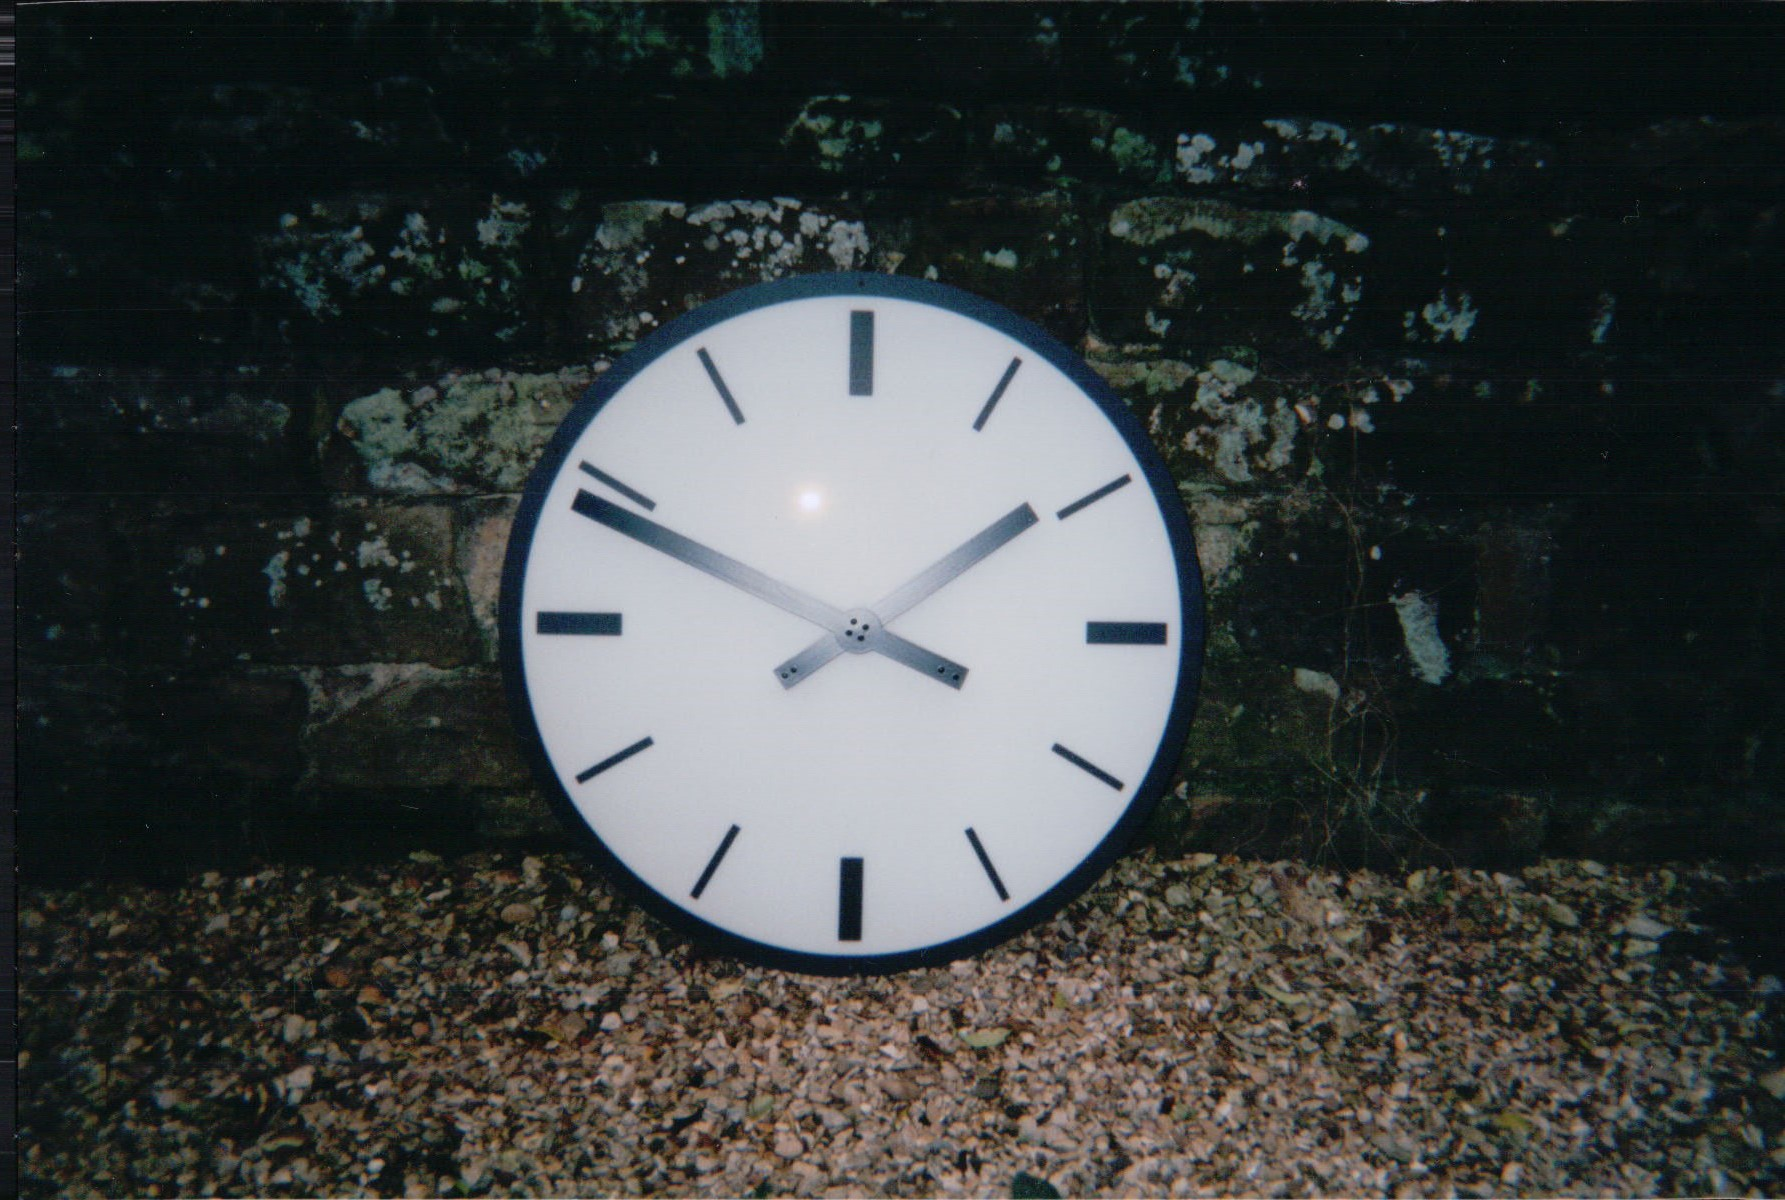 Modern style clock for school playground